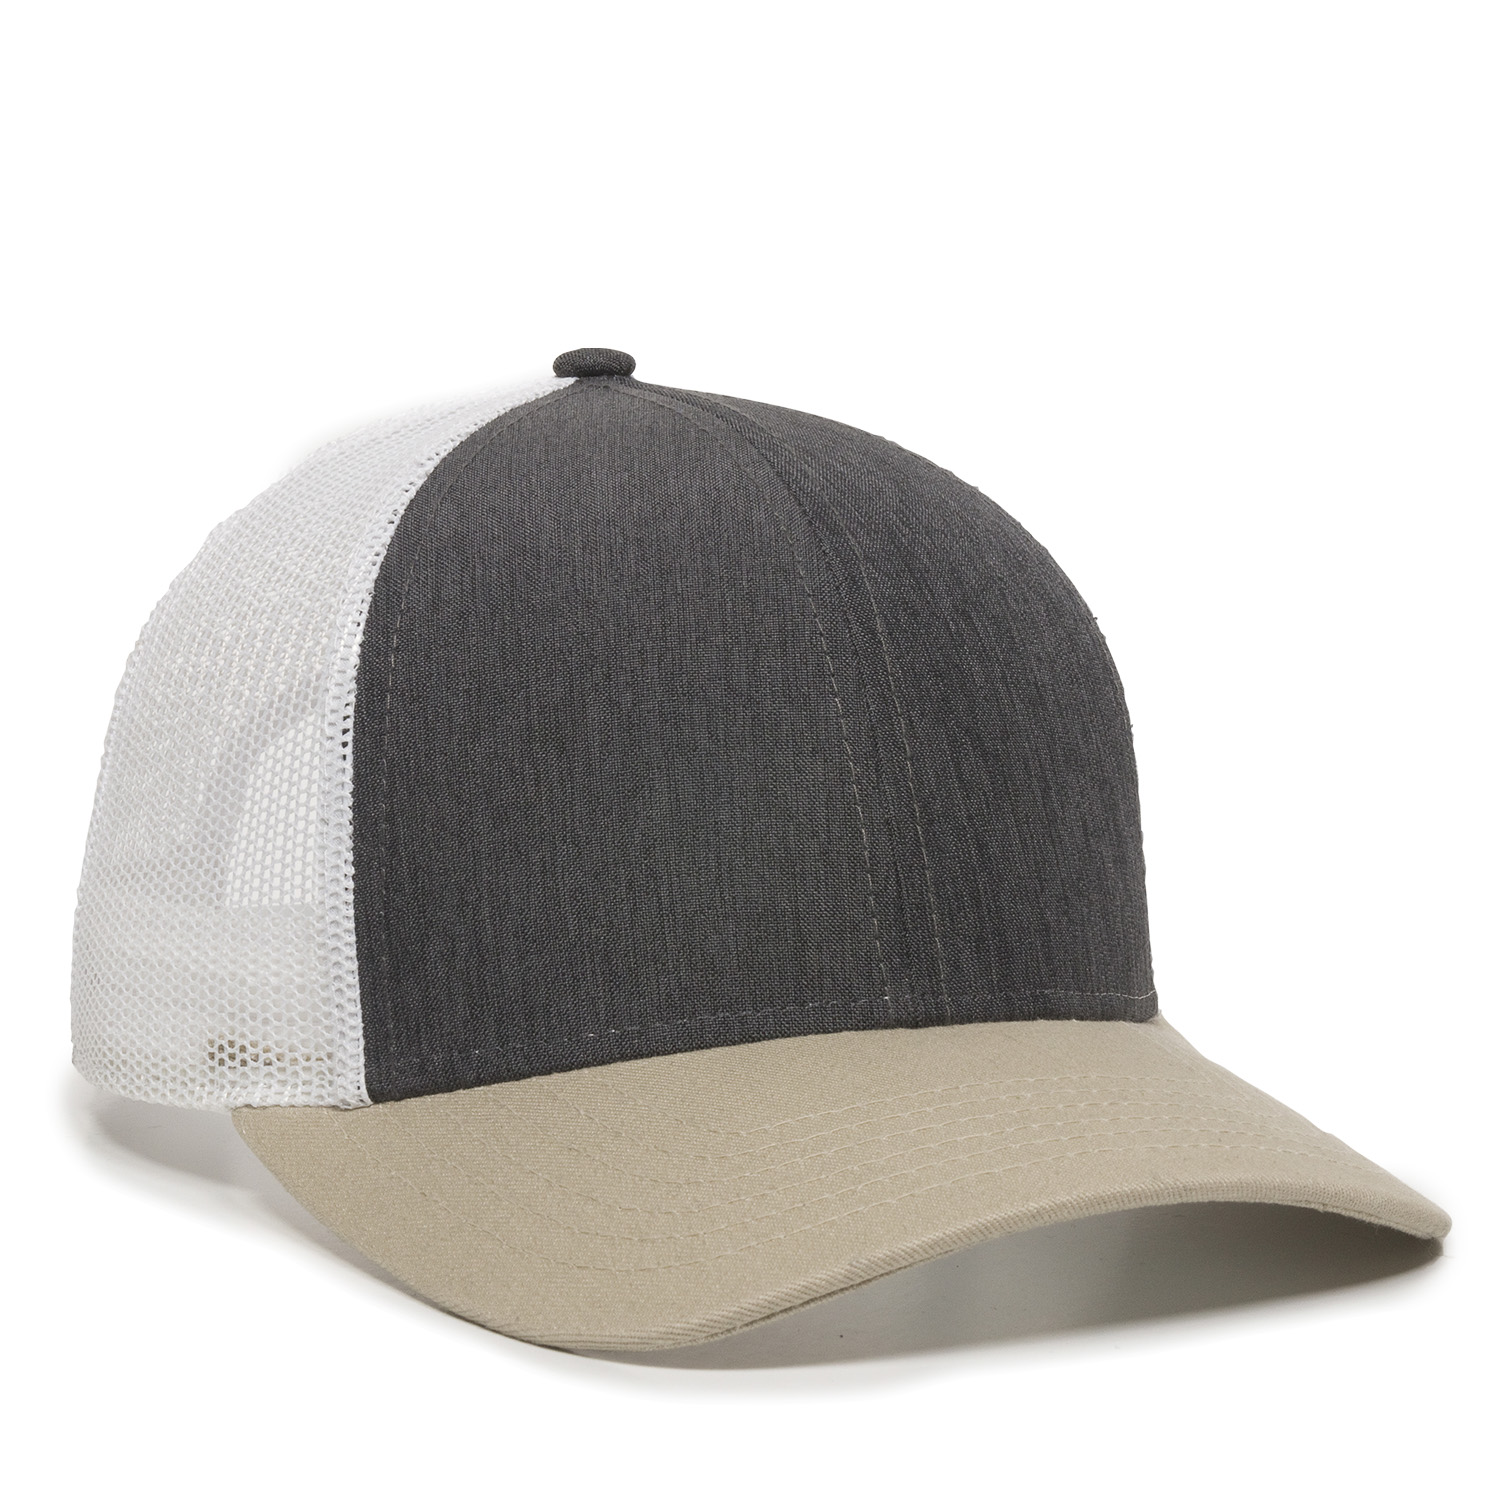 Heathered Charcoal/White/Khaki